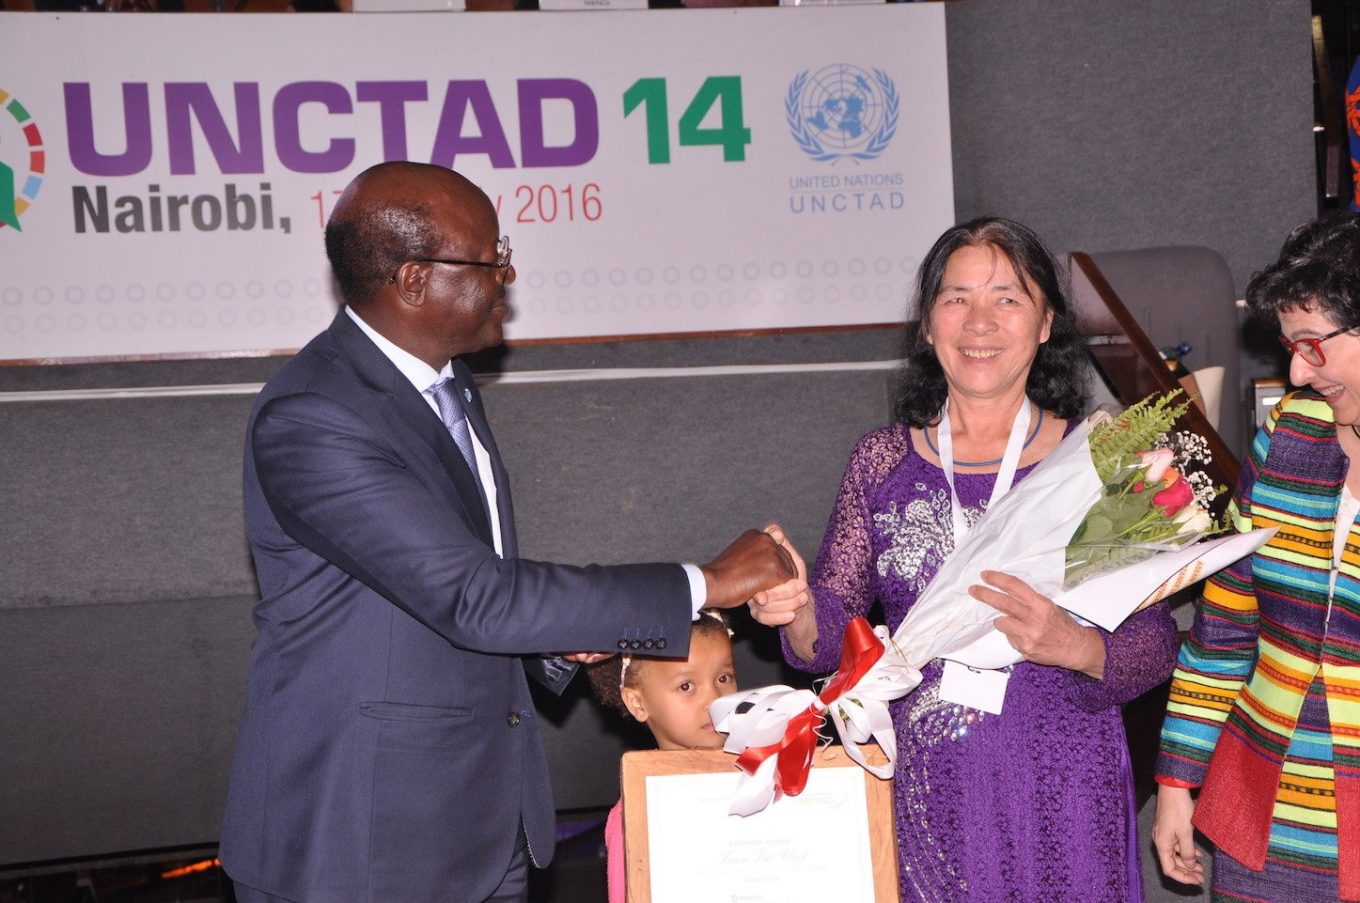 unctad 2014 - Women in Business Award: Women That Are Changing The World